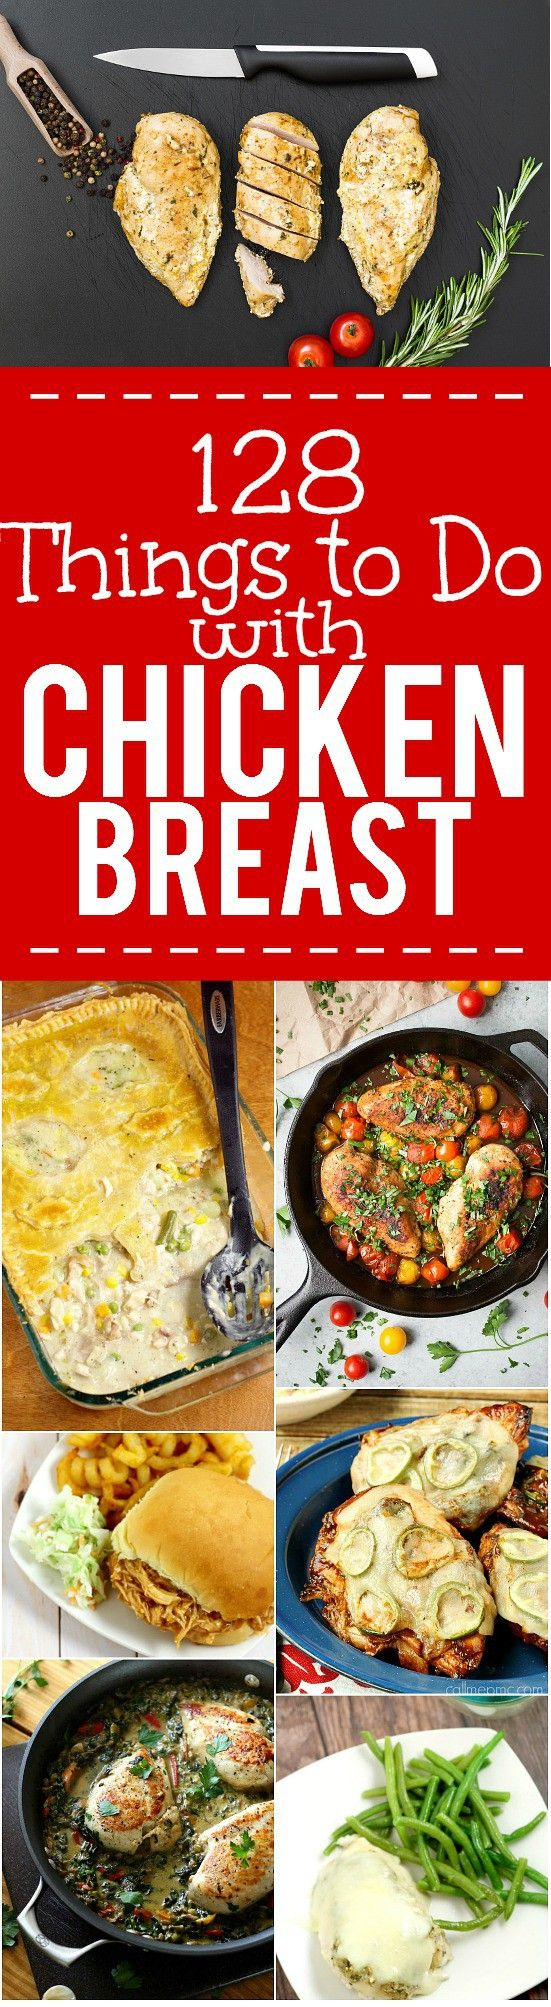 128 Chicken Breast Recipes perfect for using up that chicken breast in your freezer. Epic collection of 128 of the best quick, easy, and delicious Chicken Breast Recipes from soups and salads to entrees and casseroles. No more boring chicken breast!